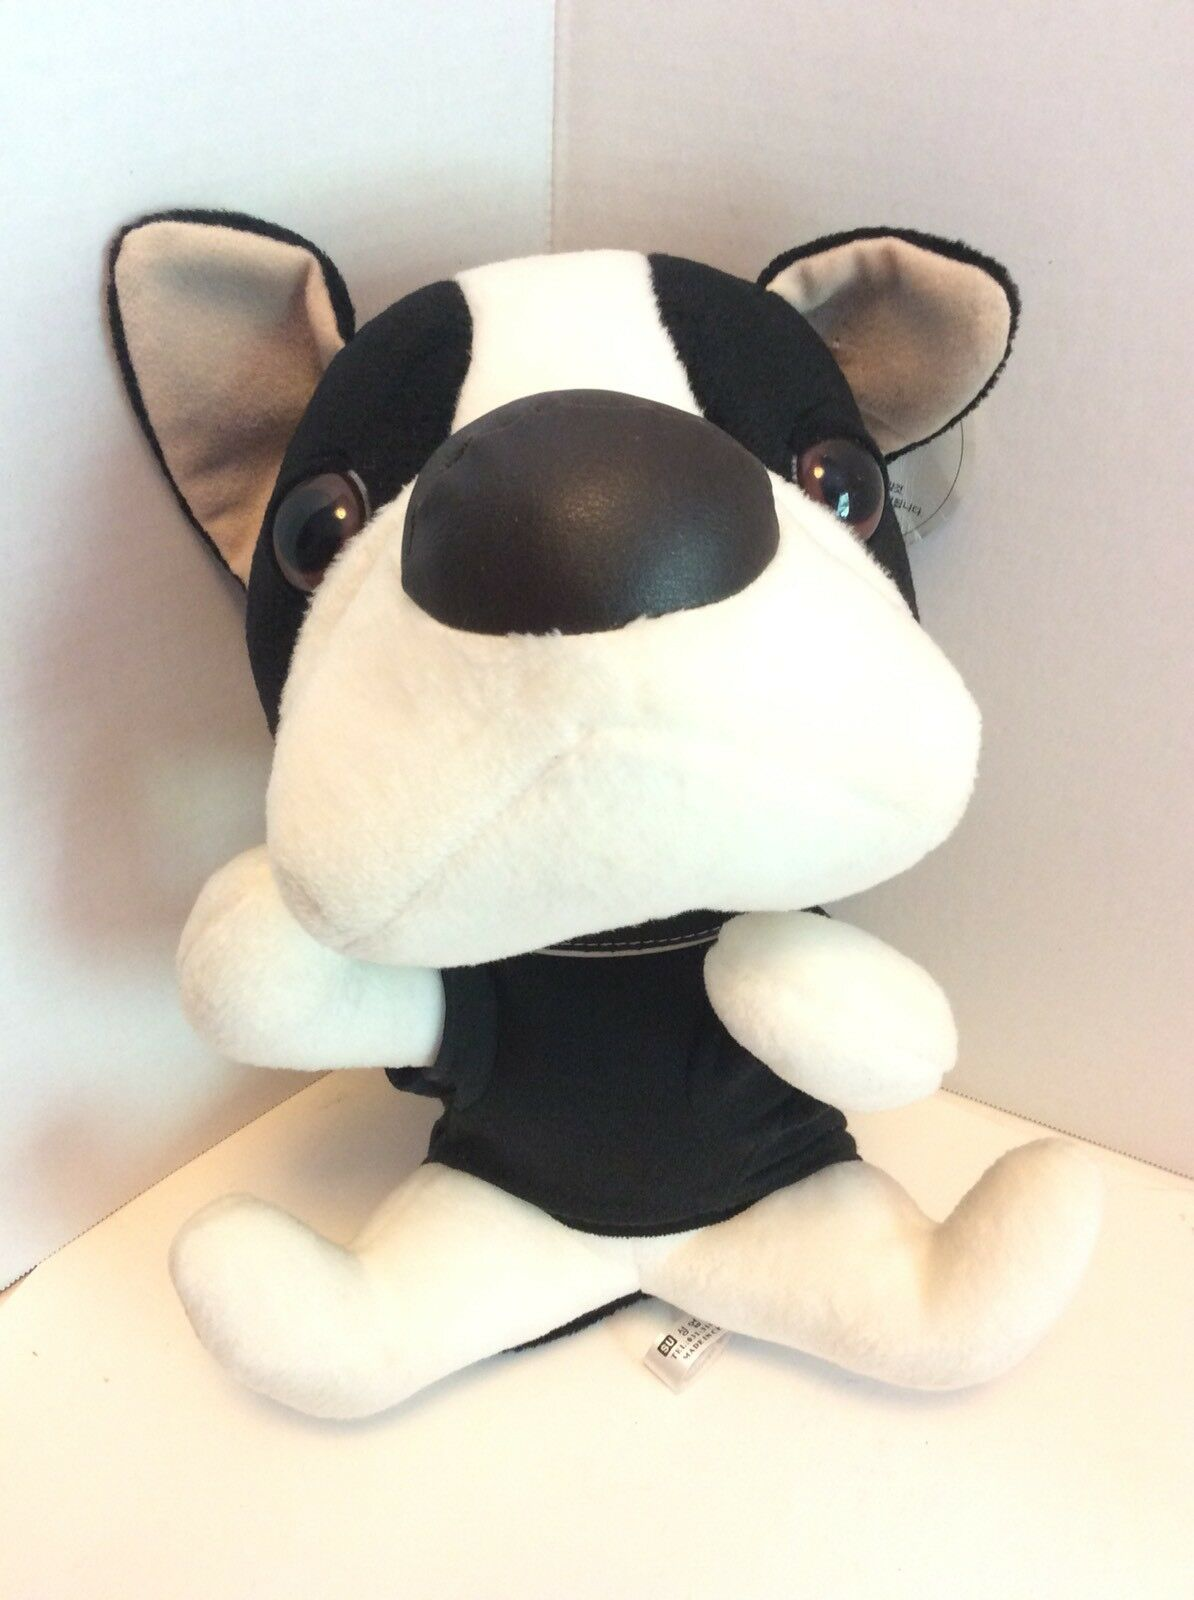 THE DOG Artlist Collection Boston Terrier French Bulldog Stuffed Animal Plush